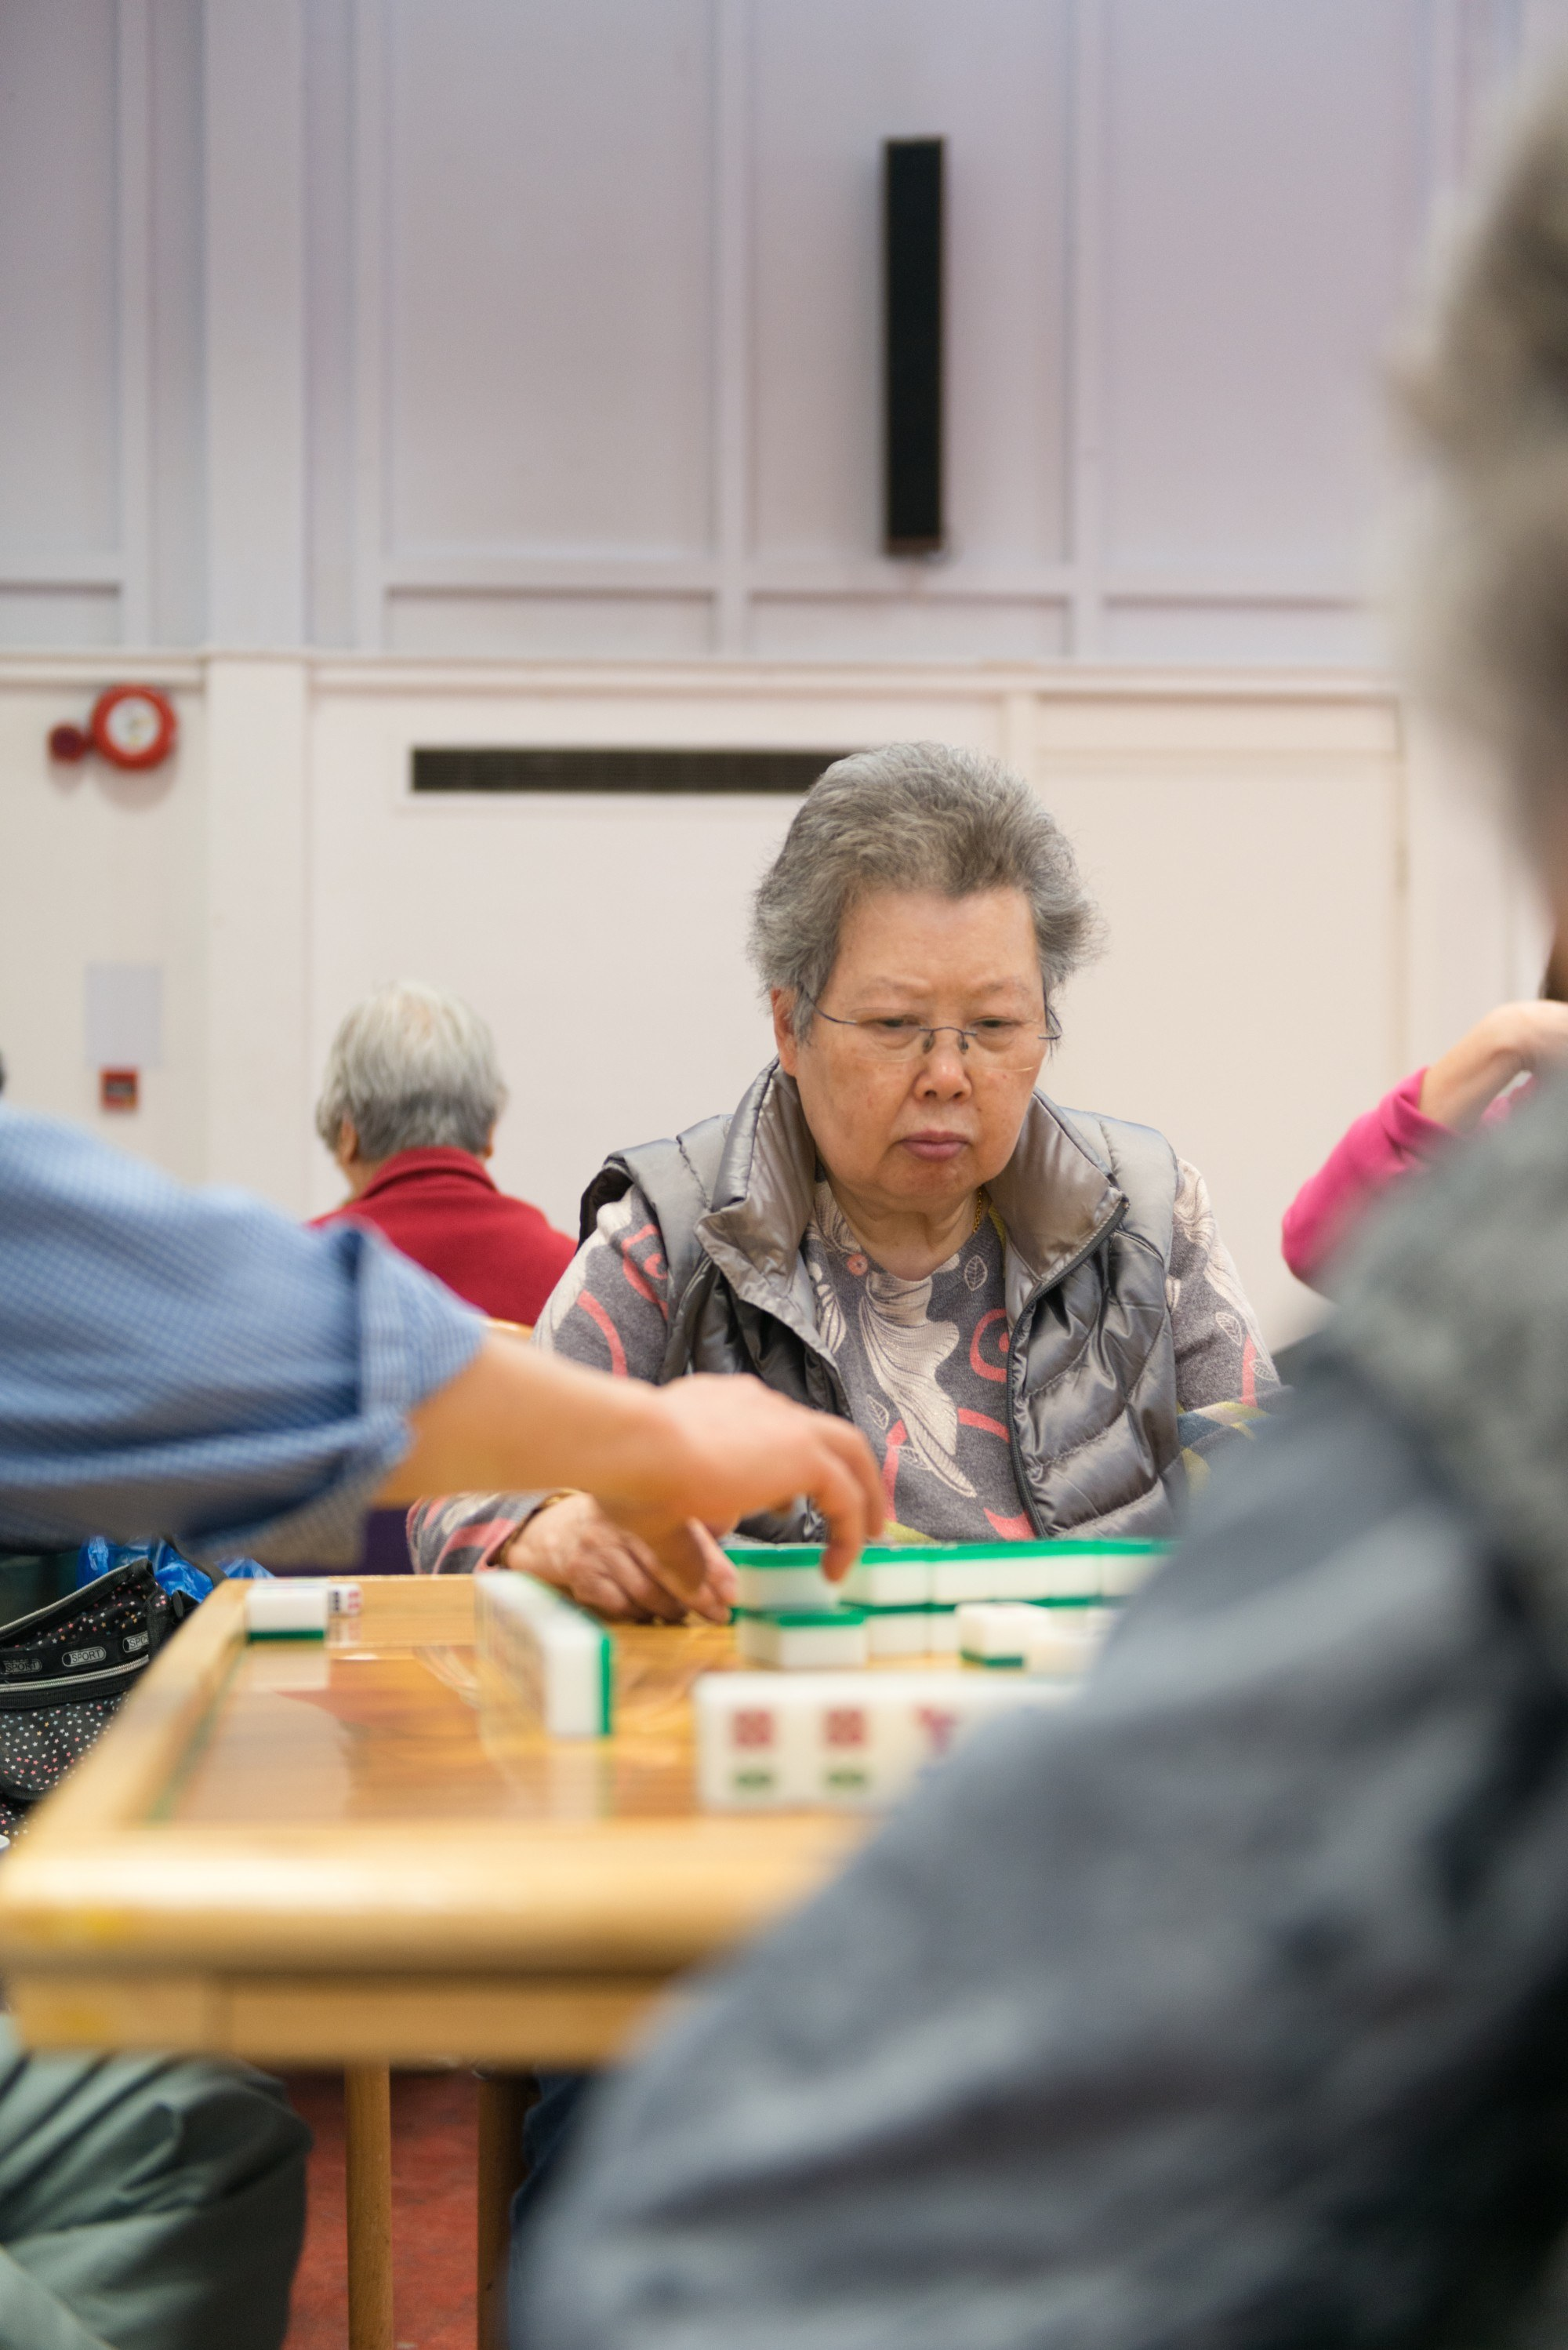 Woman playing tile-based game with look of concentration